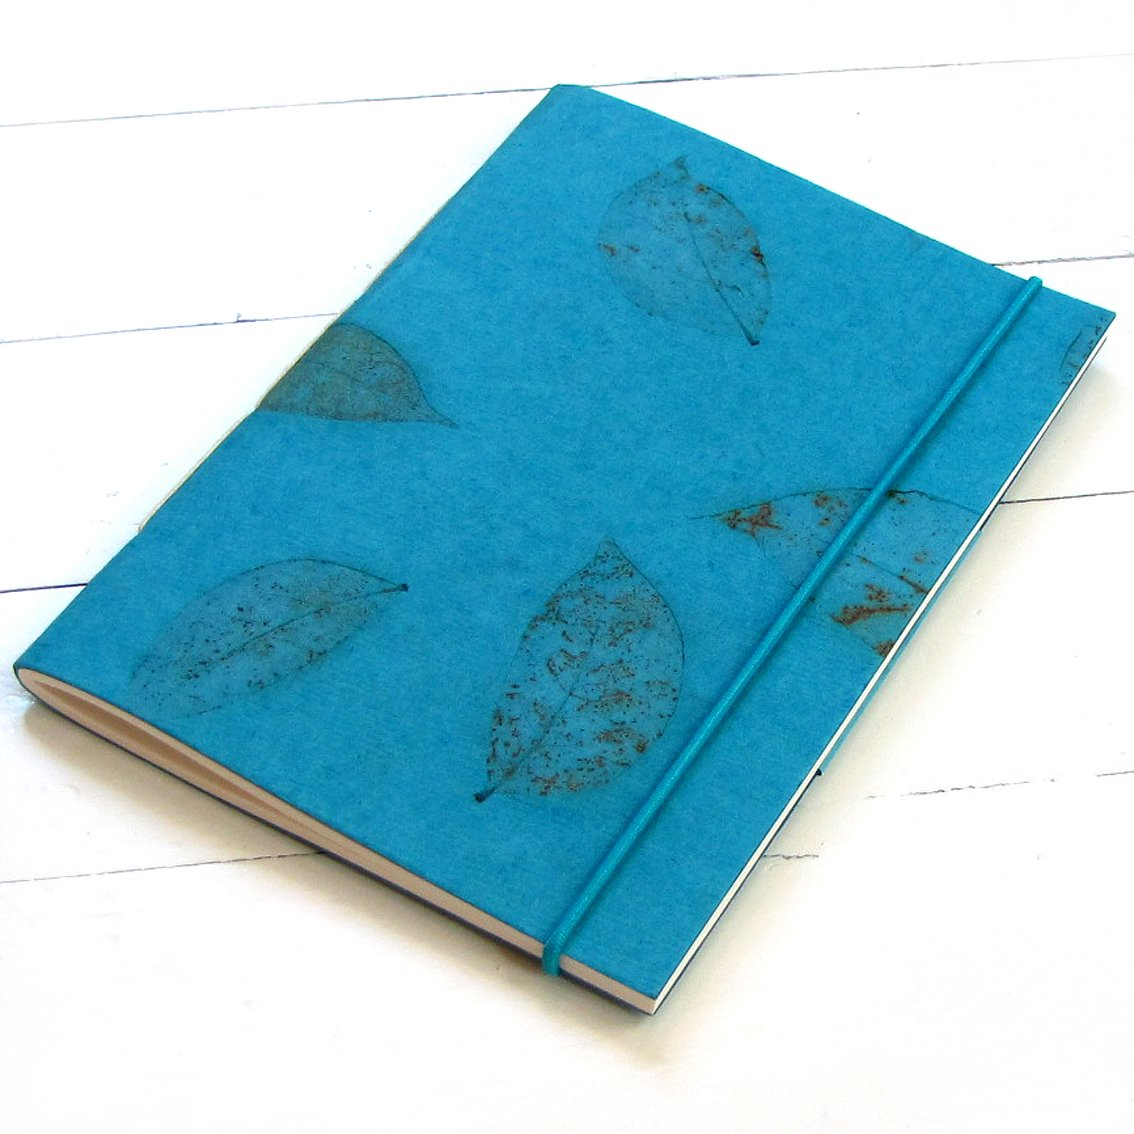 Handcrafted blank diary teal small leaf elastic journal 5x7 40pp medium handmade paper notebook